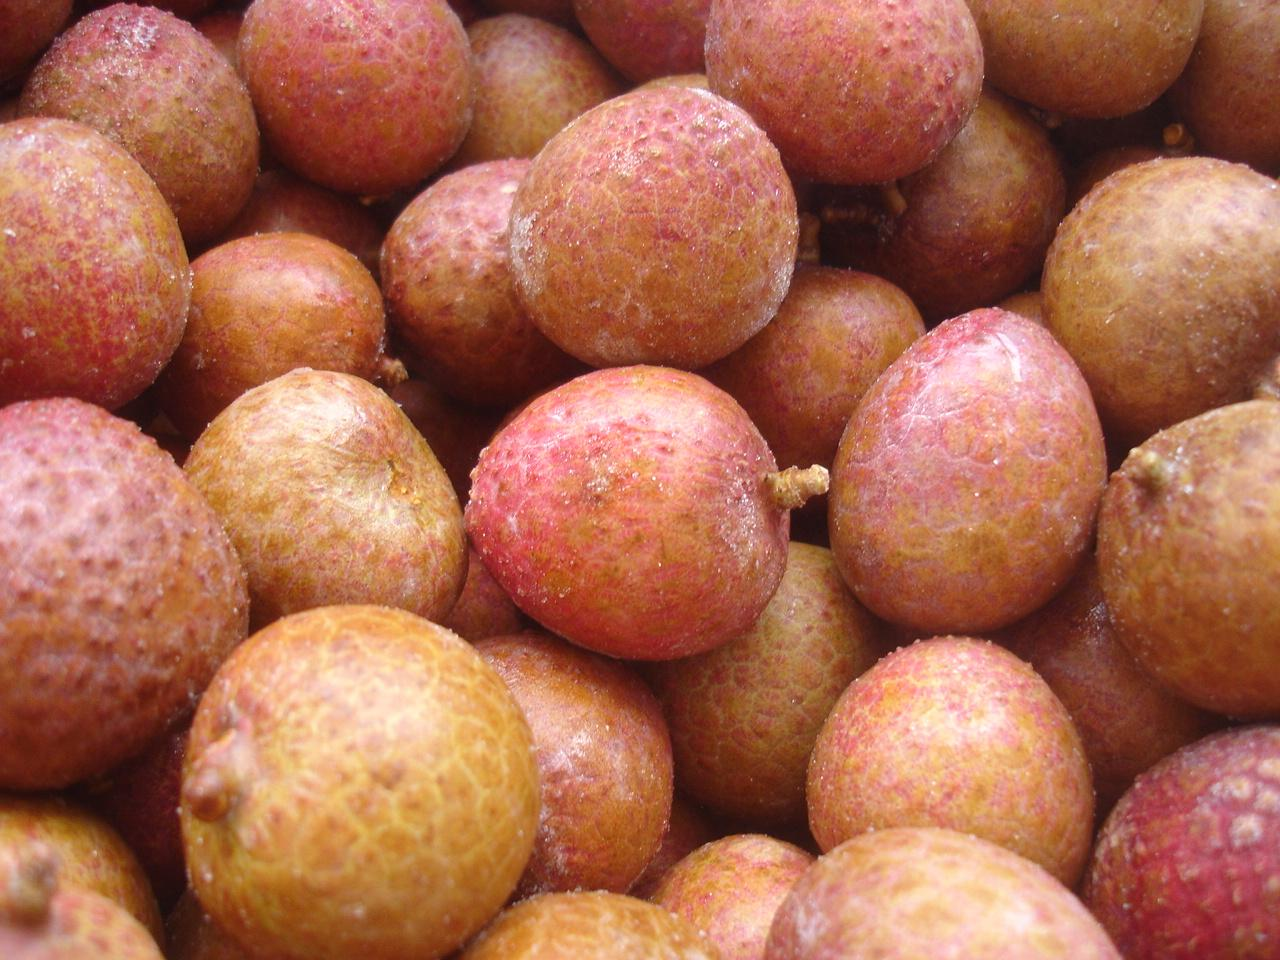 IQF Lychees ,Frozen Litchi,IQF Litchis,Frozen Lychees 4